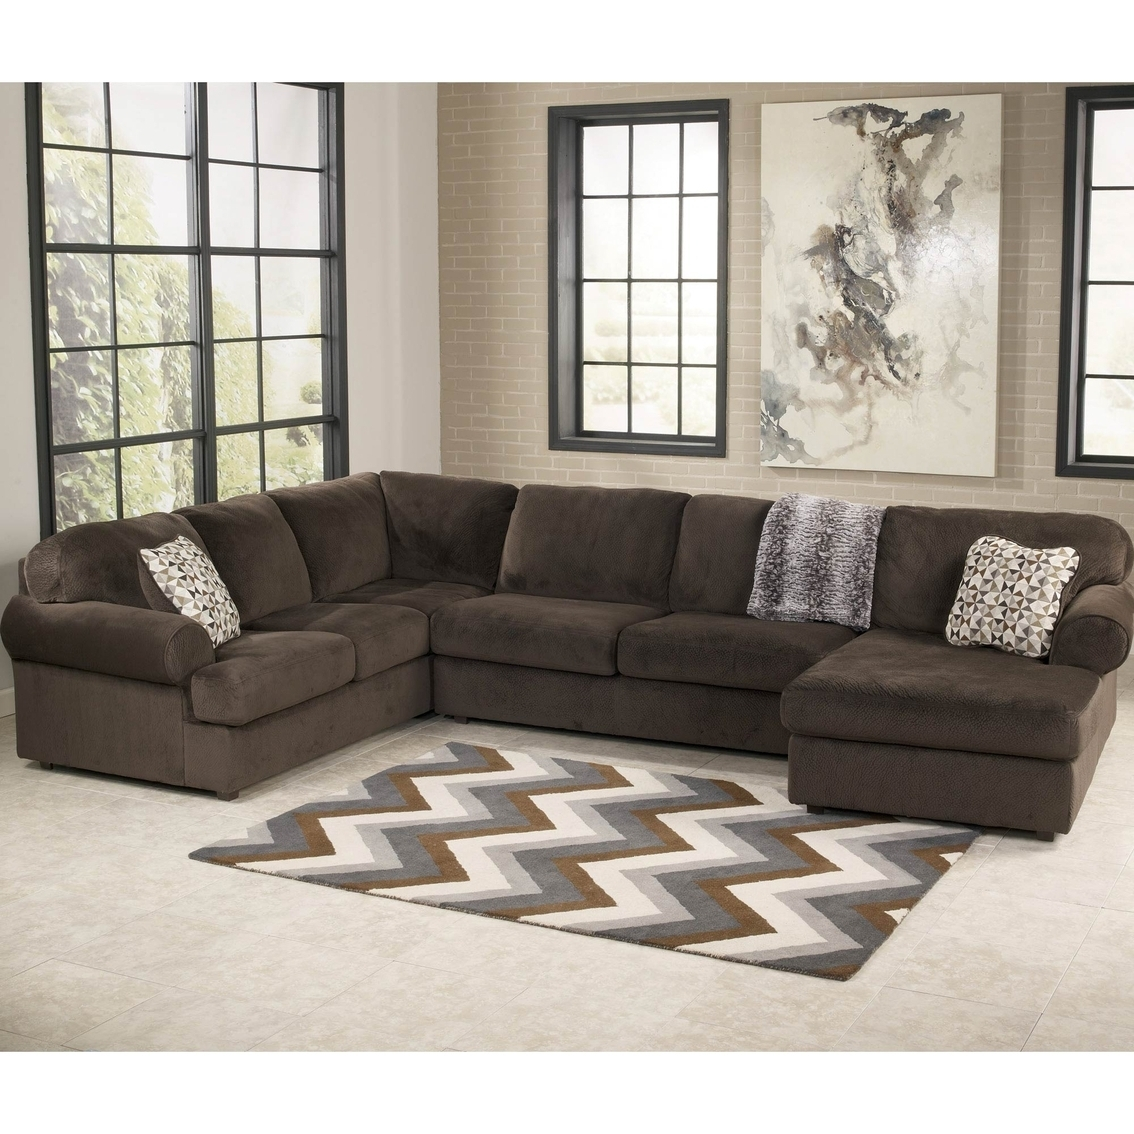 Preferred Brown Sectional Living Room (View 12 of 15)